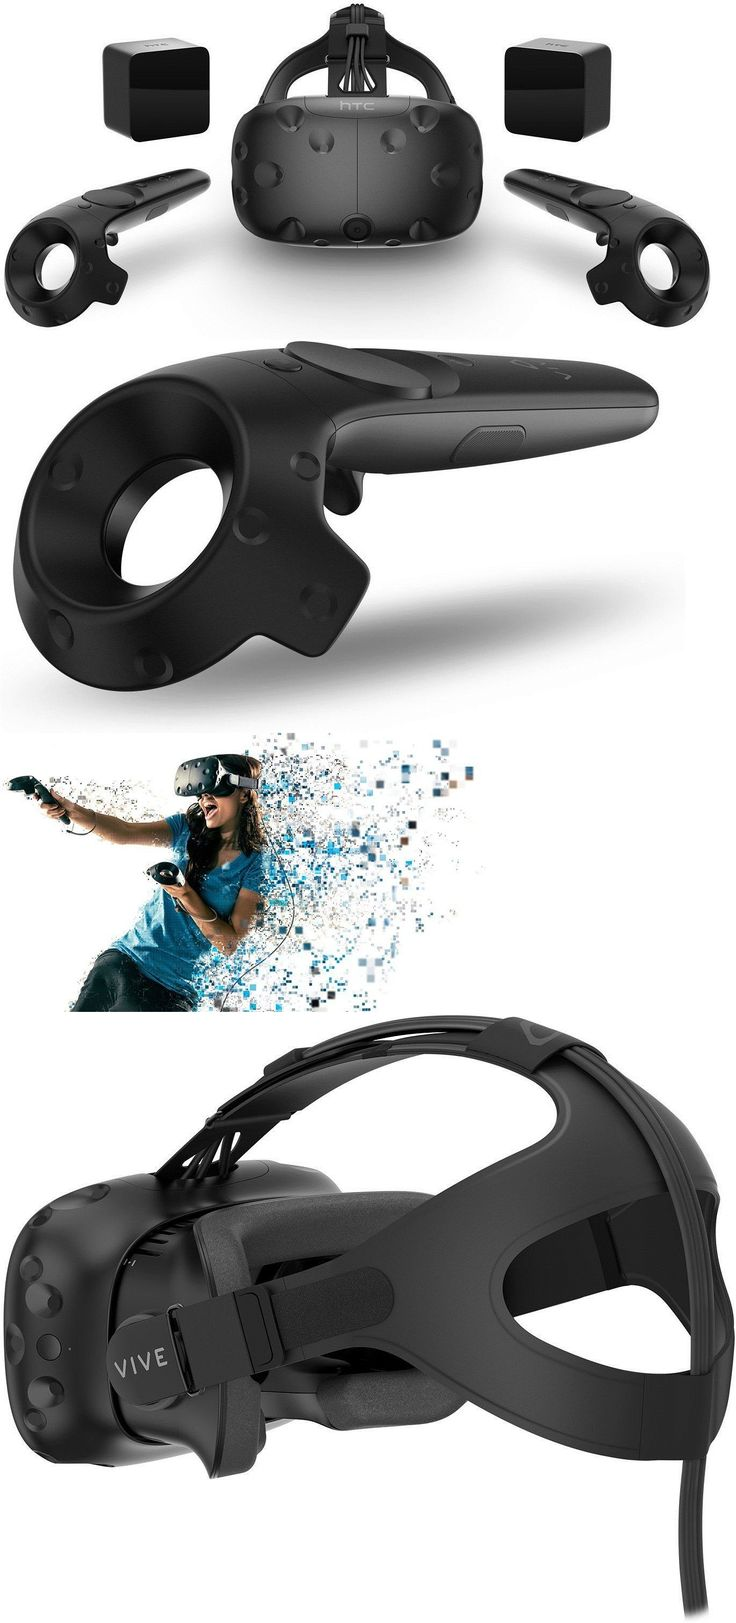 PC and Console VR Headsets: *Brand New* Htc Vive Vr Virtual Reality Headset Consumer Version Retail Cv1 -> BUY IT NOW ONLY: $747 on eBay!